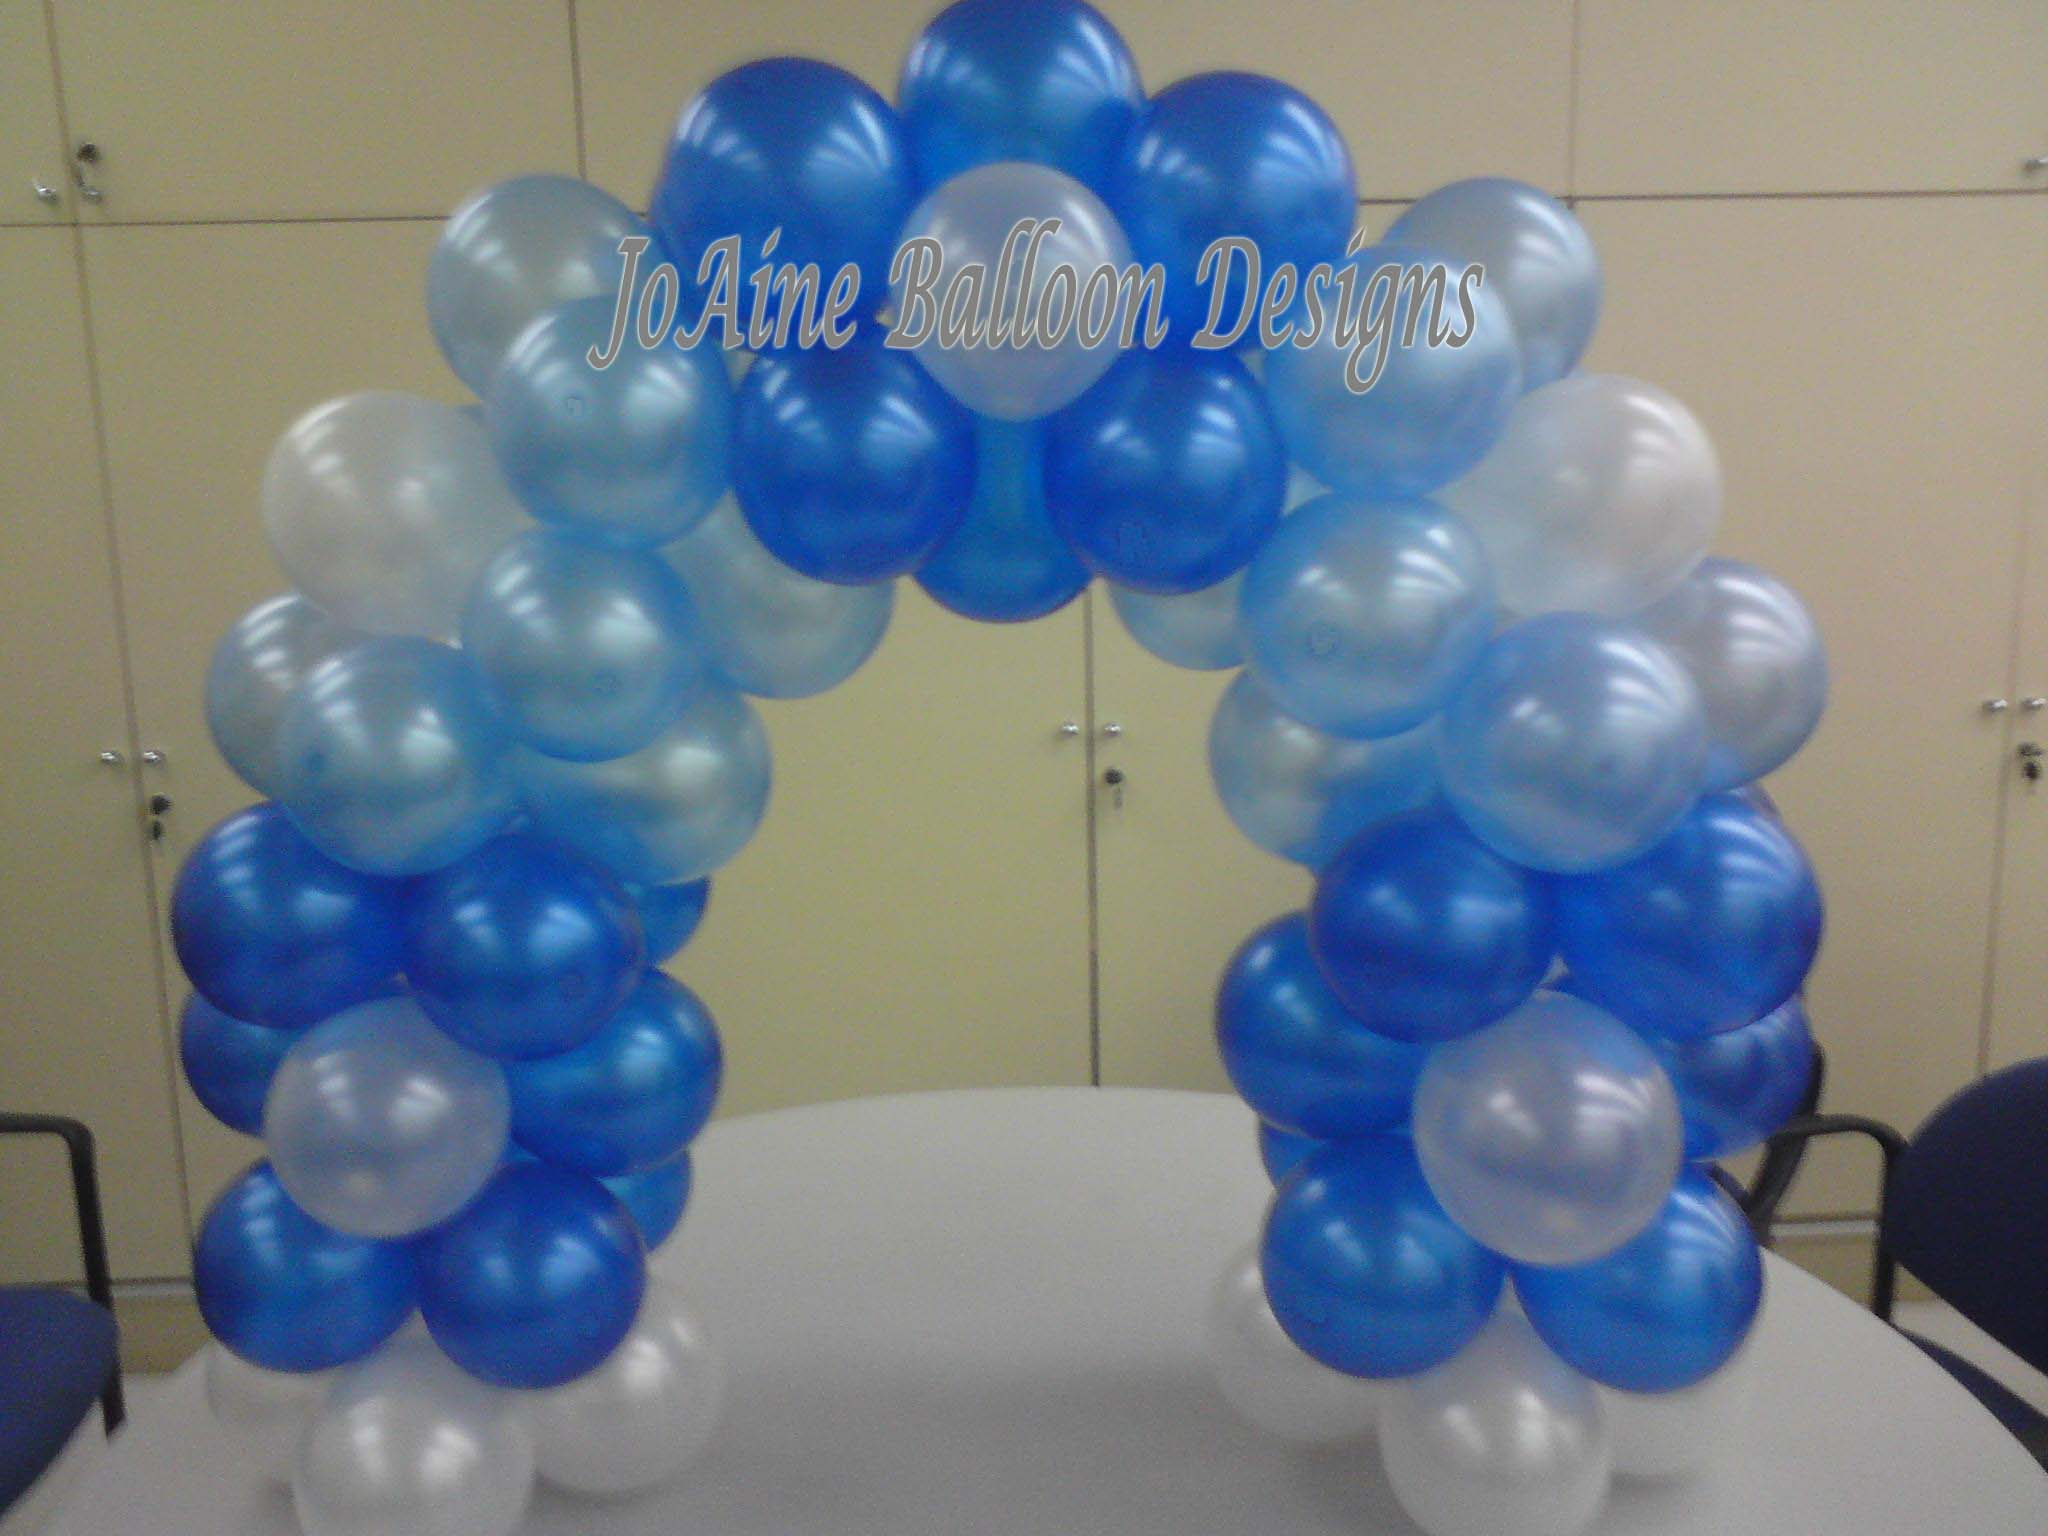 St Andrews Church Hall Decorations  JoAine Balloon Designs